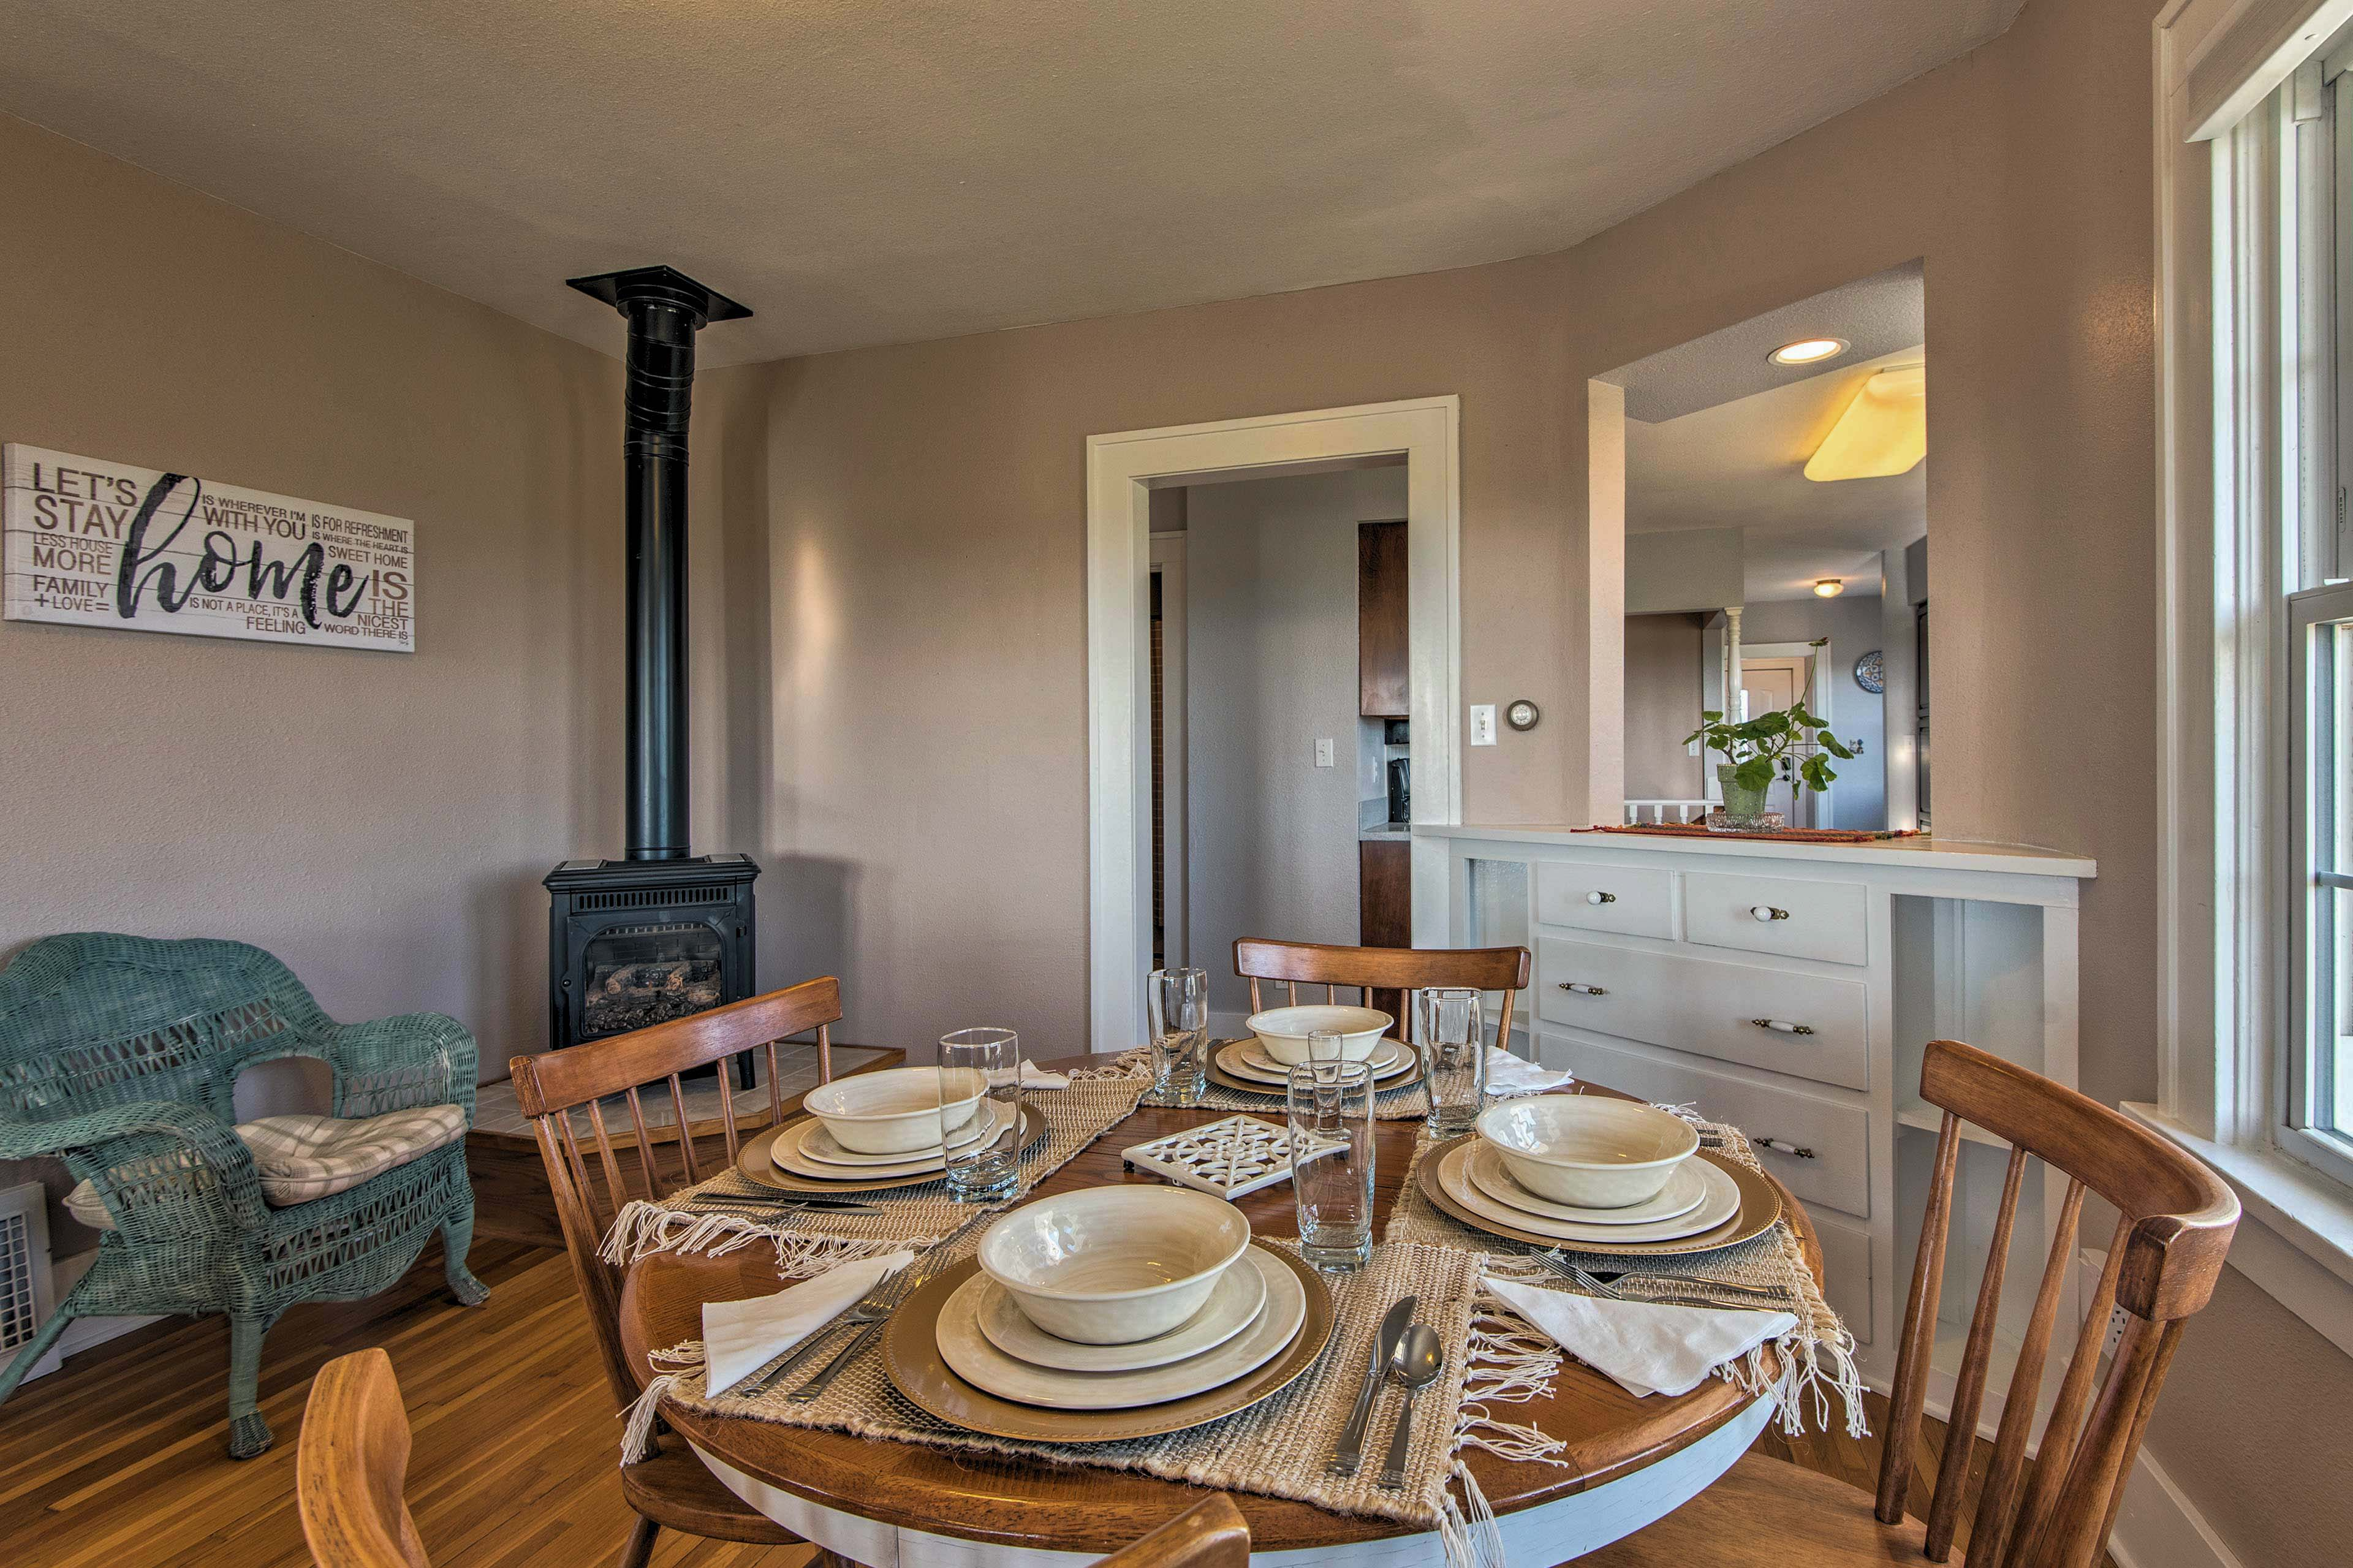 Enjoy more casual meals around the 4-person table.